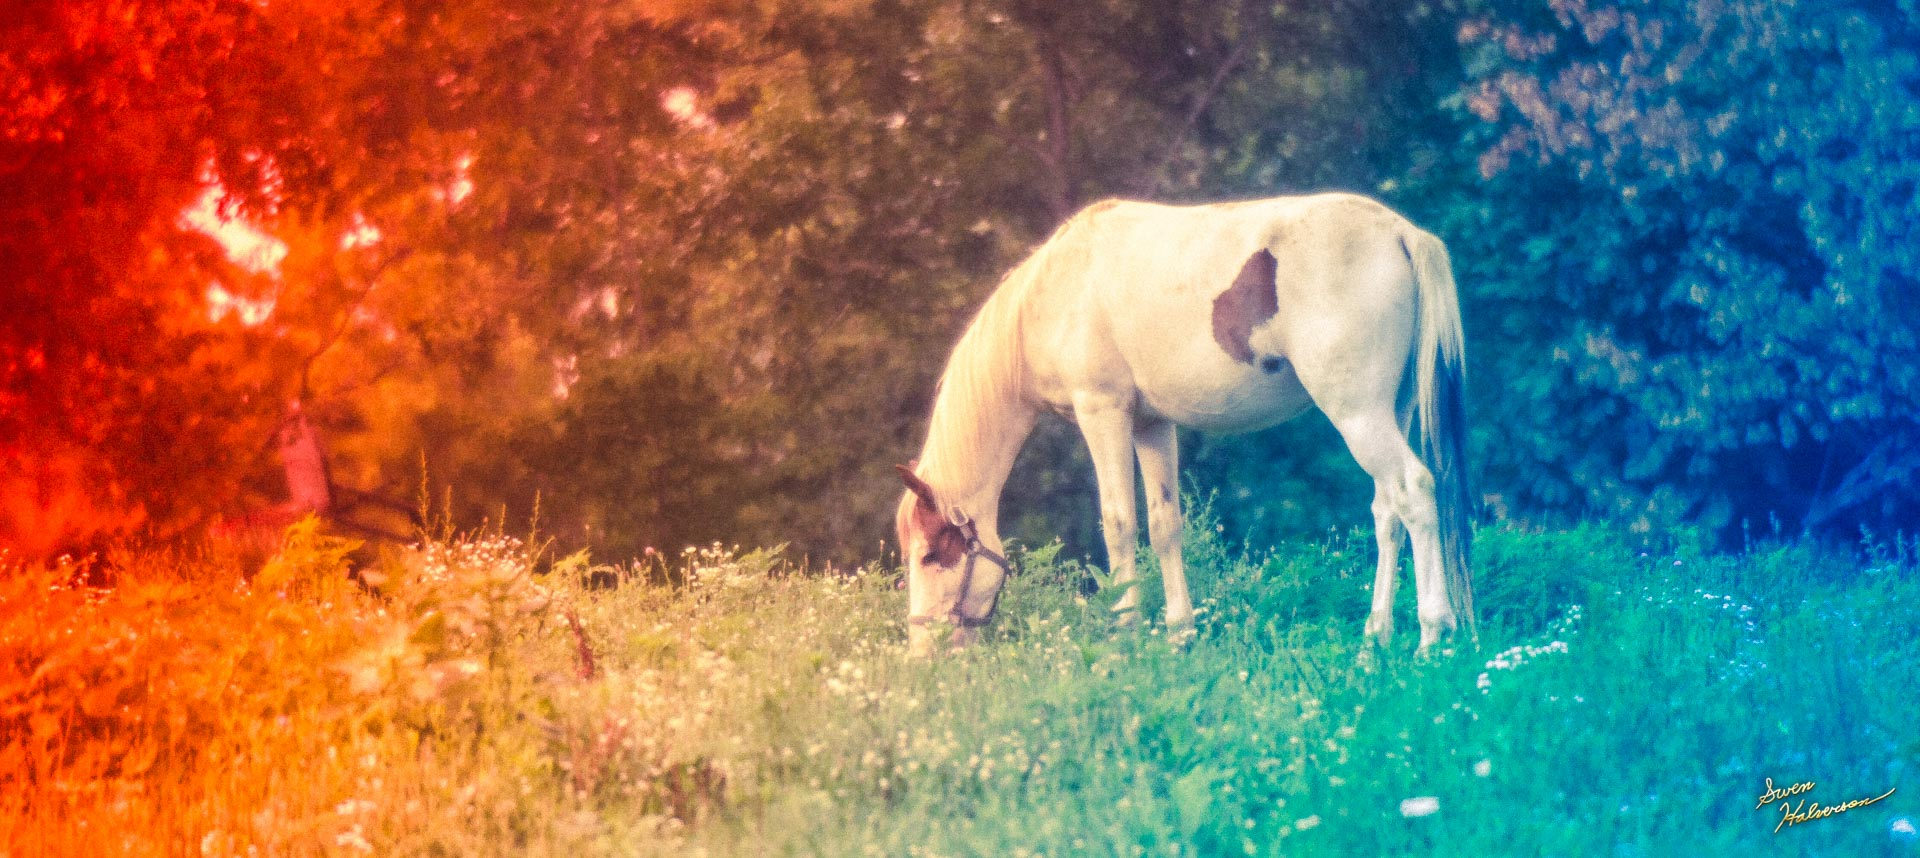 Theme: Animal | Title: The Horse